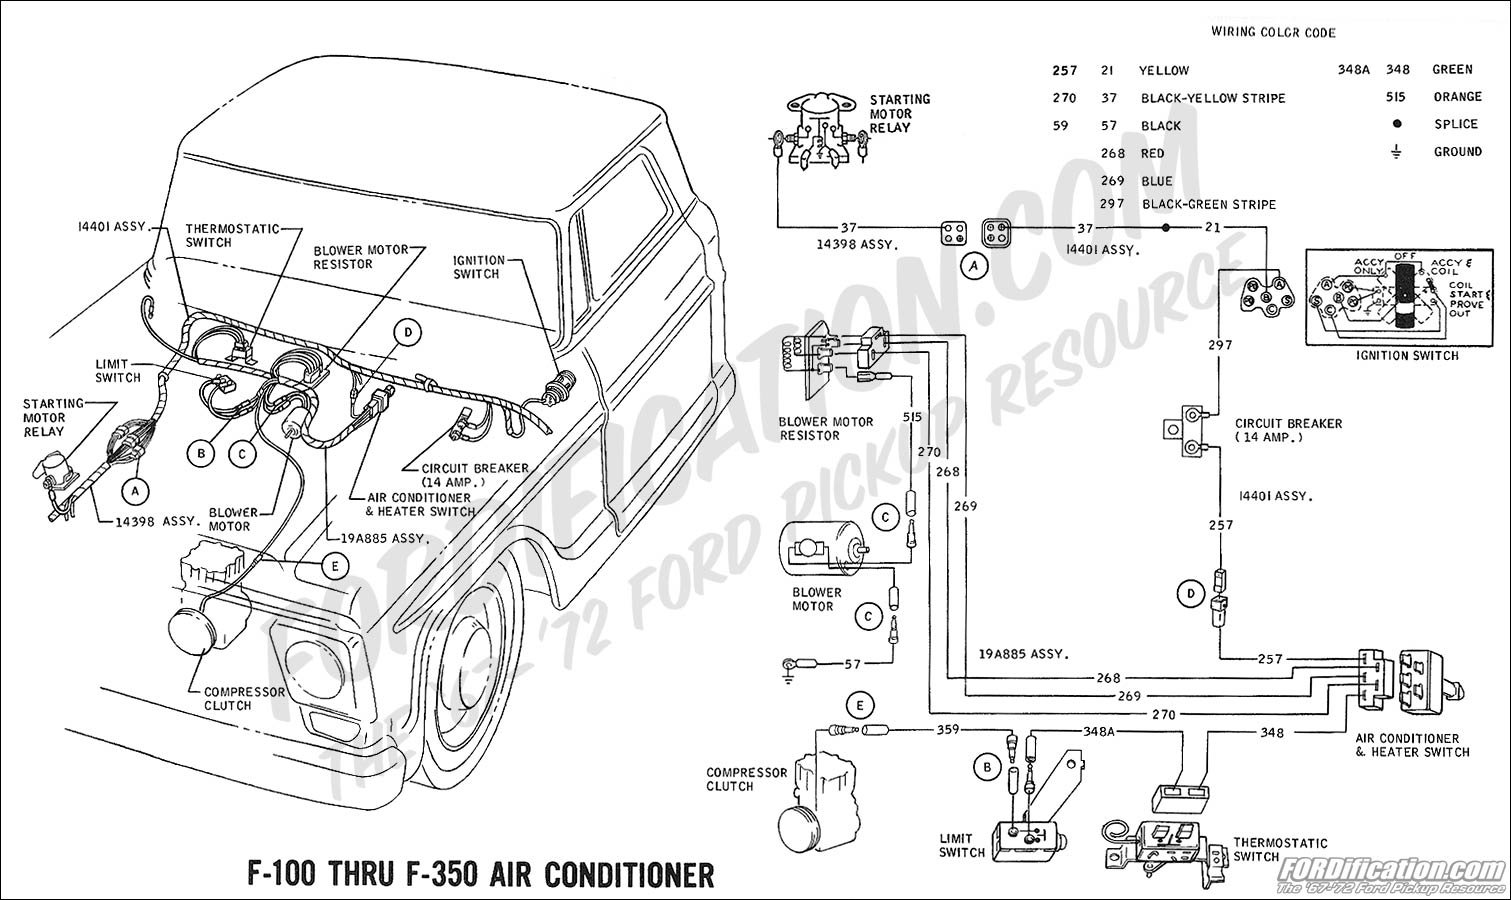 Wiring Diagrams For Freightliner Trucks